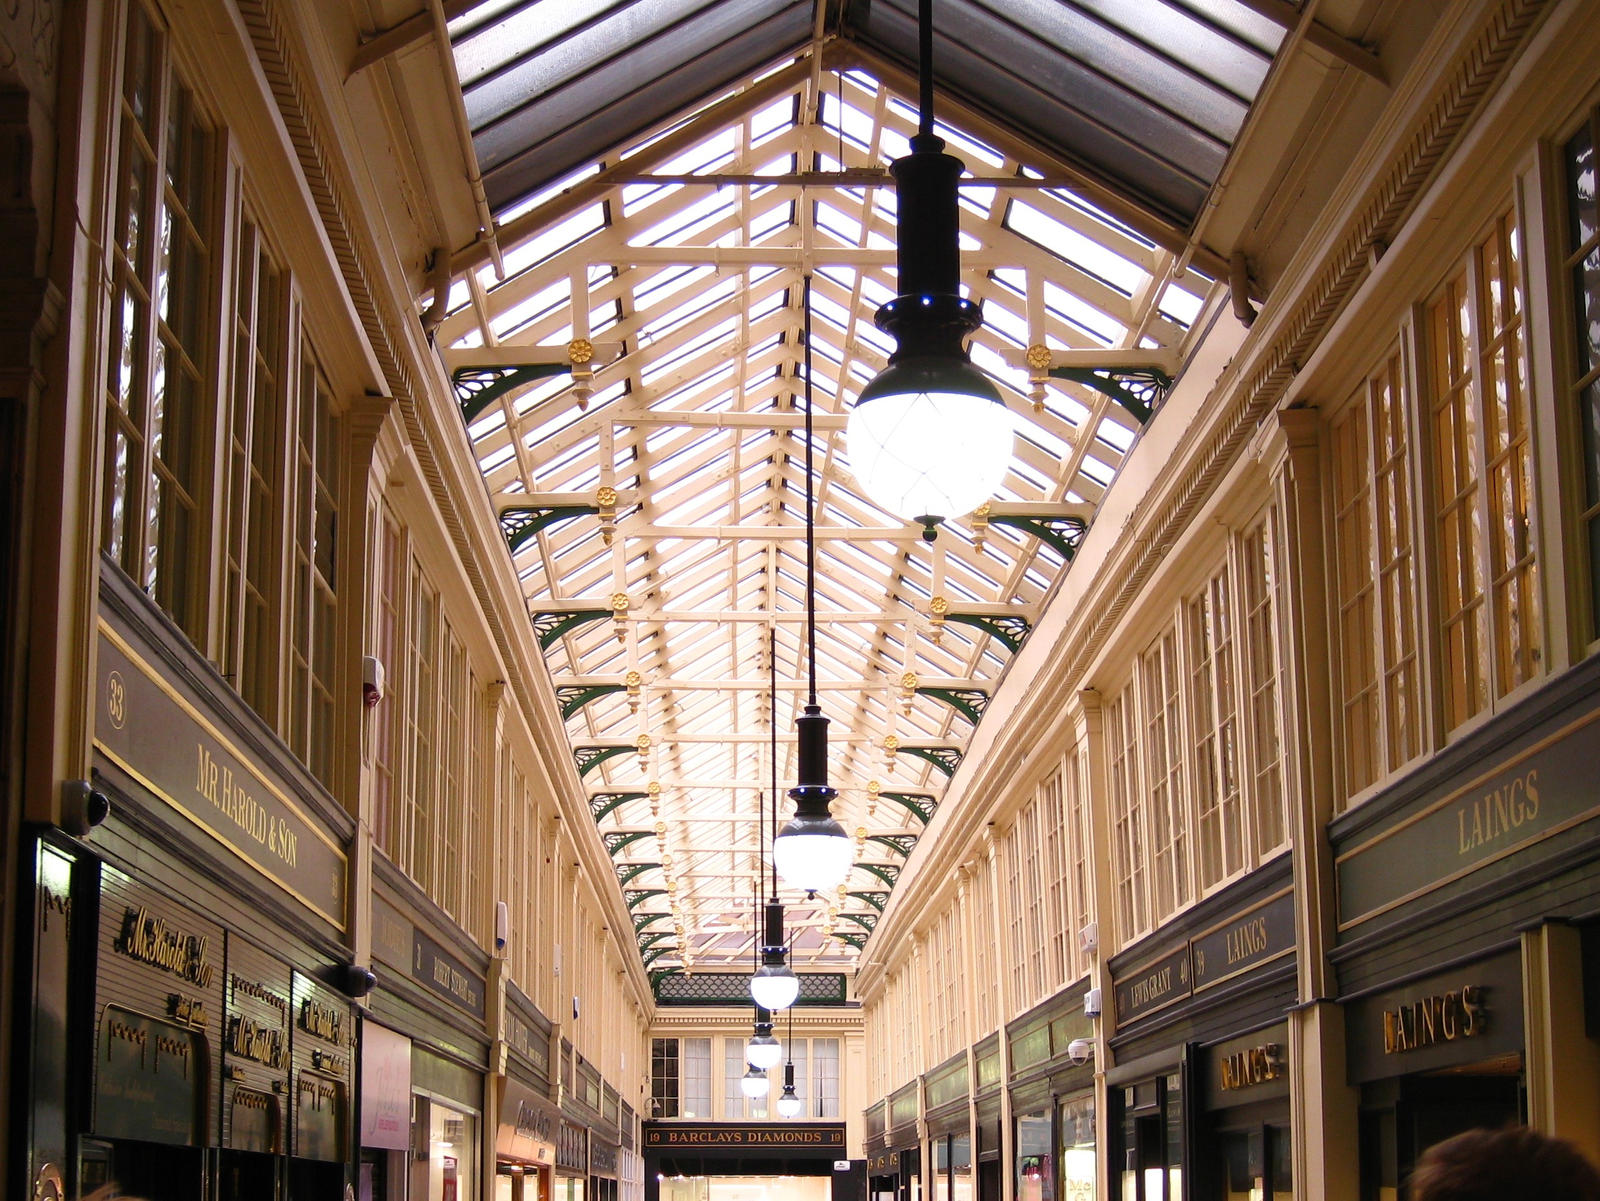 A Jeweler-only Mall in Glasgow